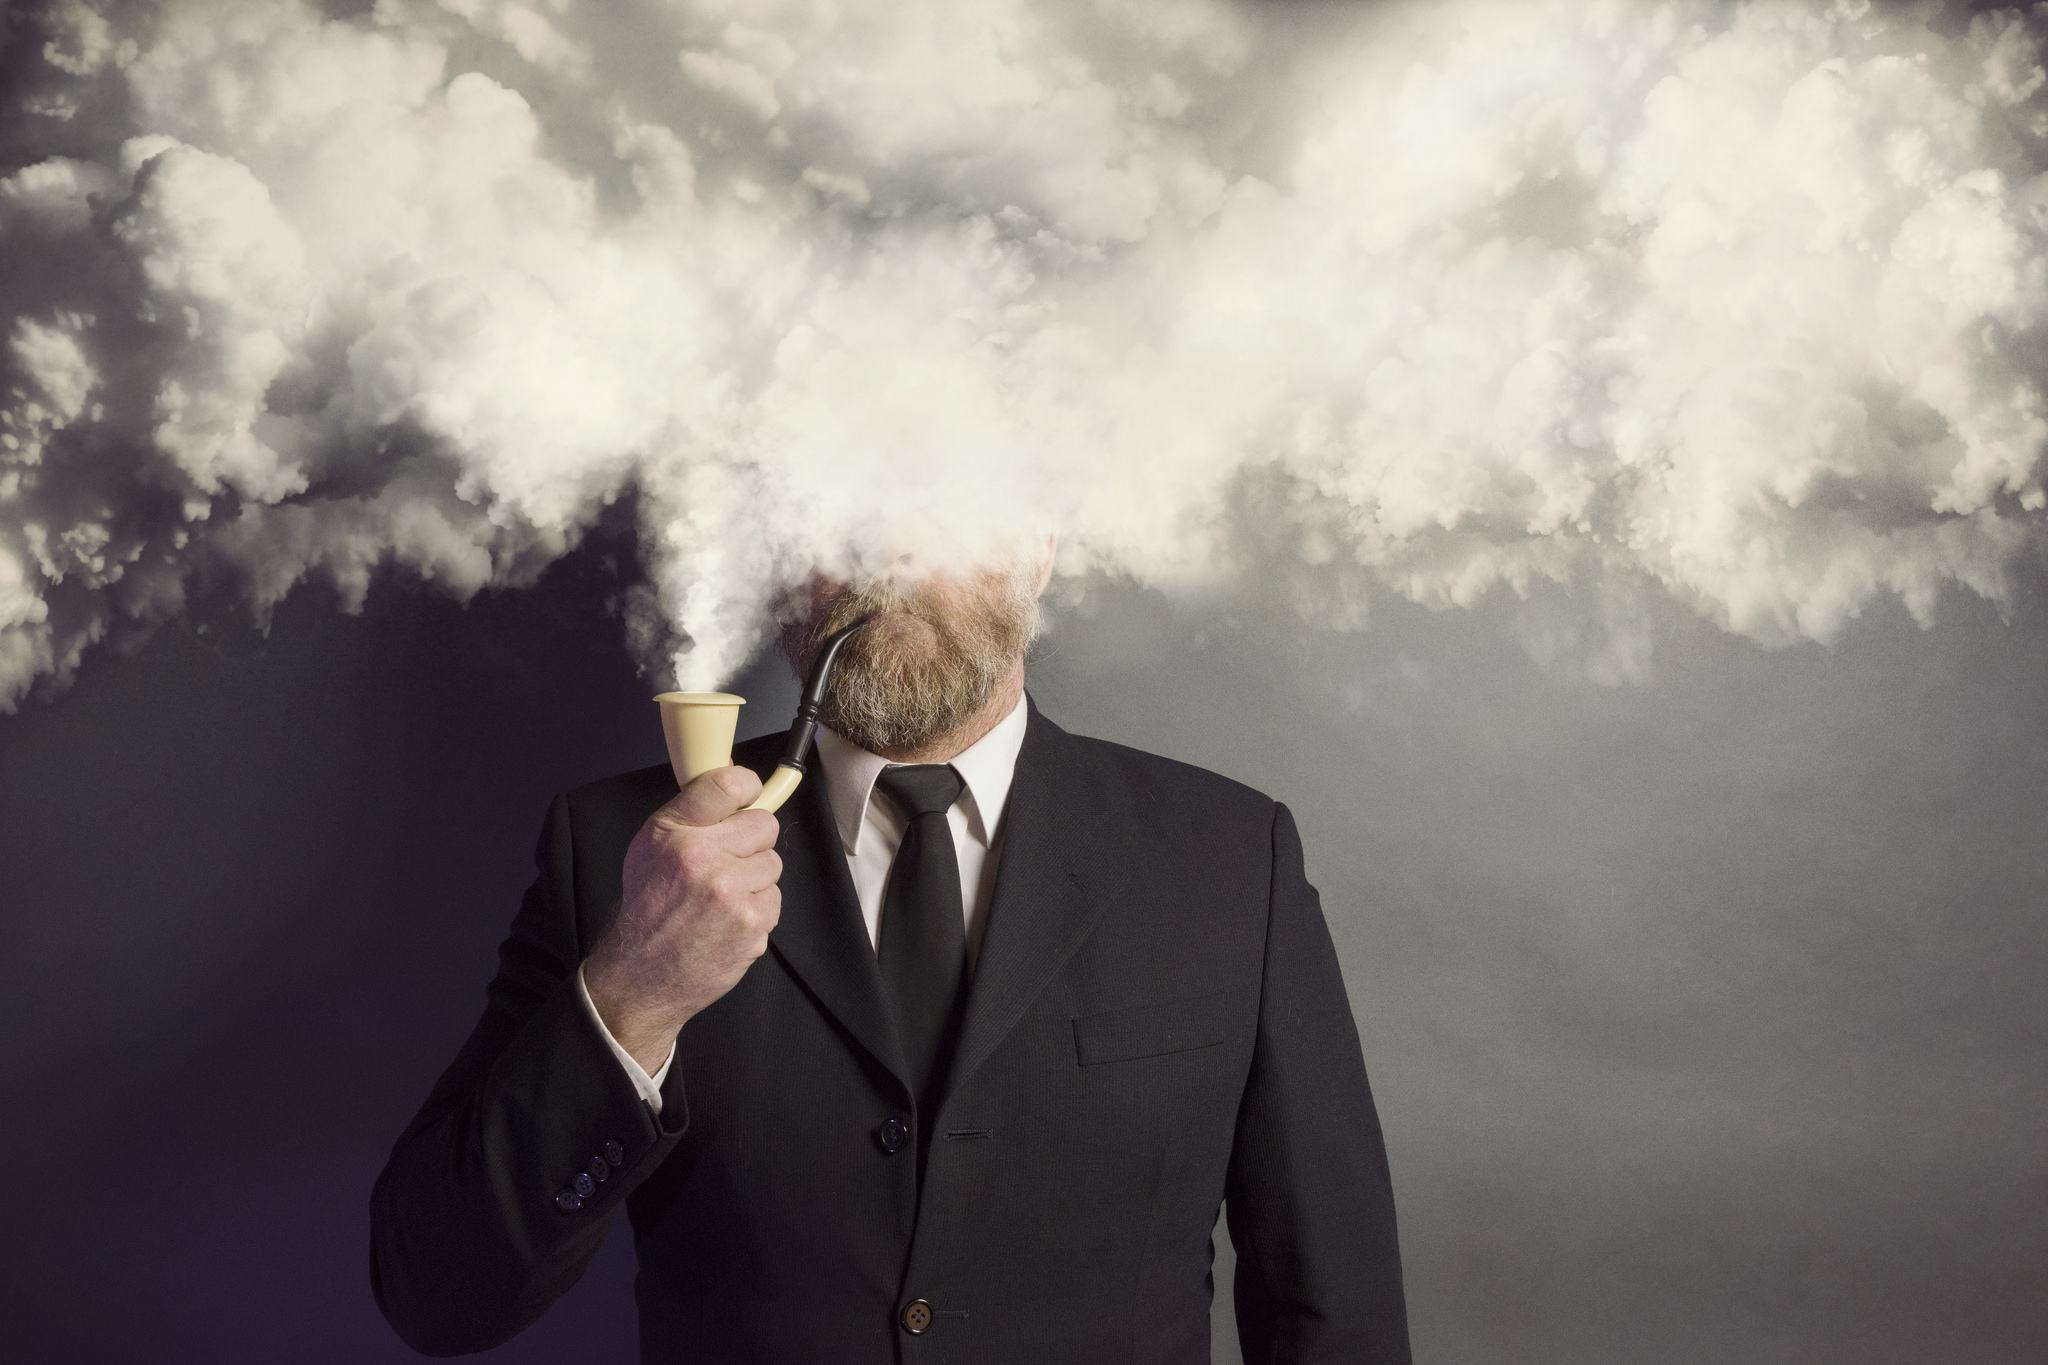 Manipulation hd wallpaper background image 2048x1365 - No smoking wallpaper download ...